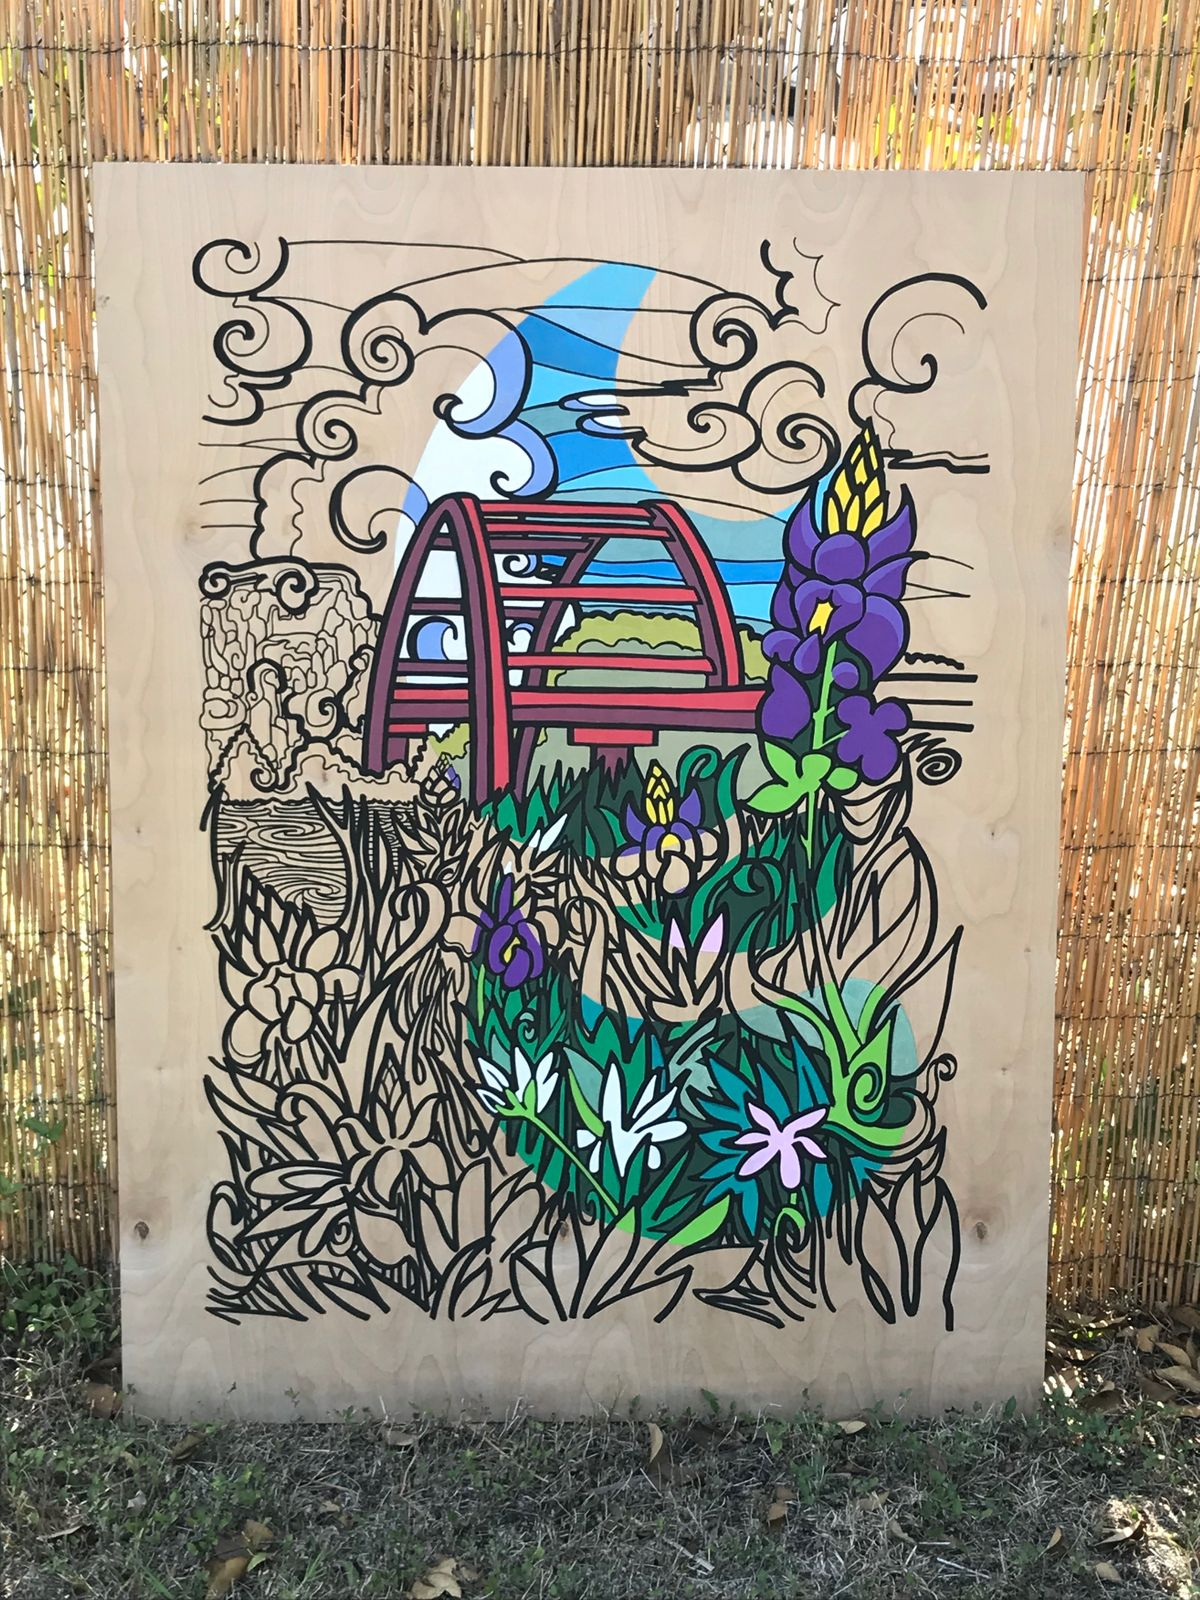 Becca_Borrelli_Austin_Bluebonnets_Austin_Art_Local_Art.JPG